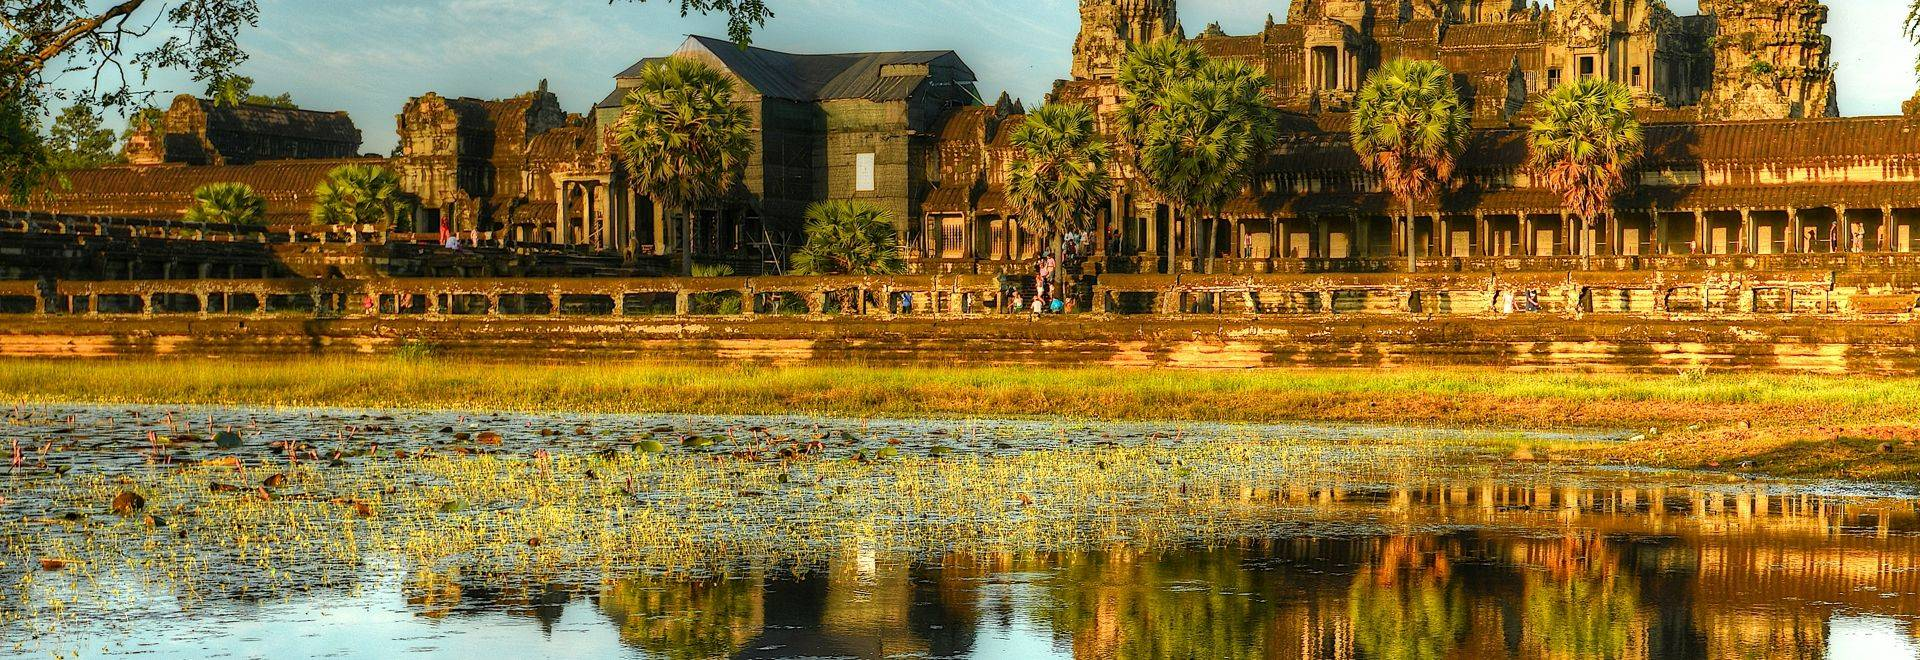 The exterior view of Angkor Wat.